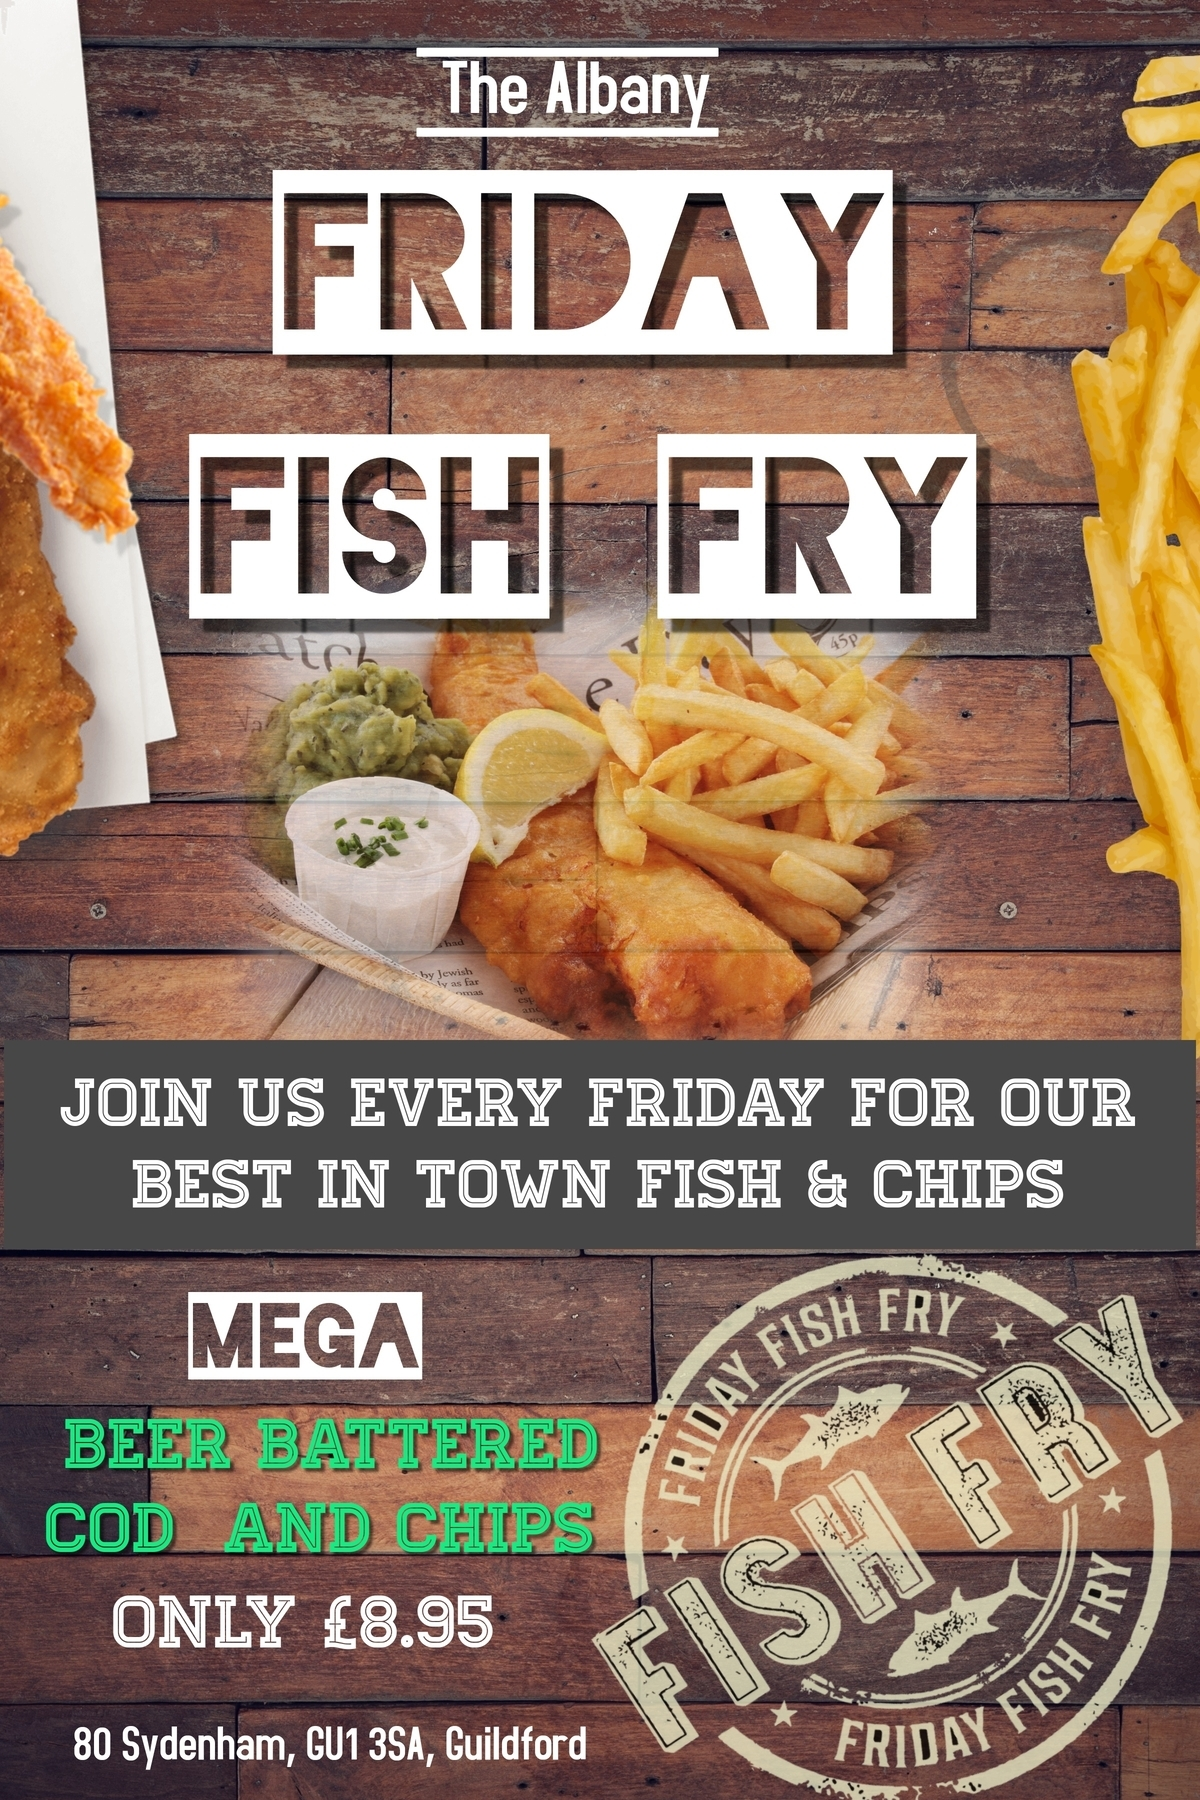 Friday Fish FRY - Join us every Friday for our best in town fish & chips!!Mega Cod, chips and mushy peas & tartare sauce! Freshly cooked piping hot, smothered in salt and soused with vinegar - it simply cannot be beaten!